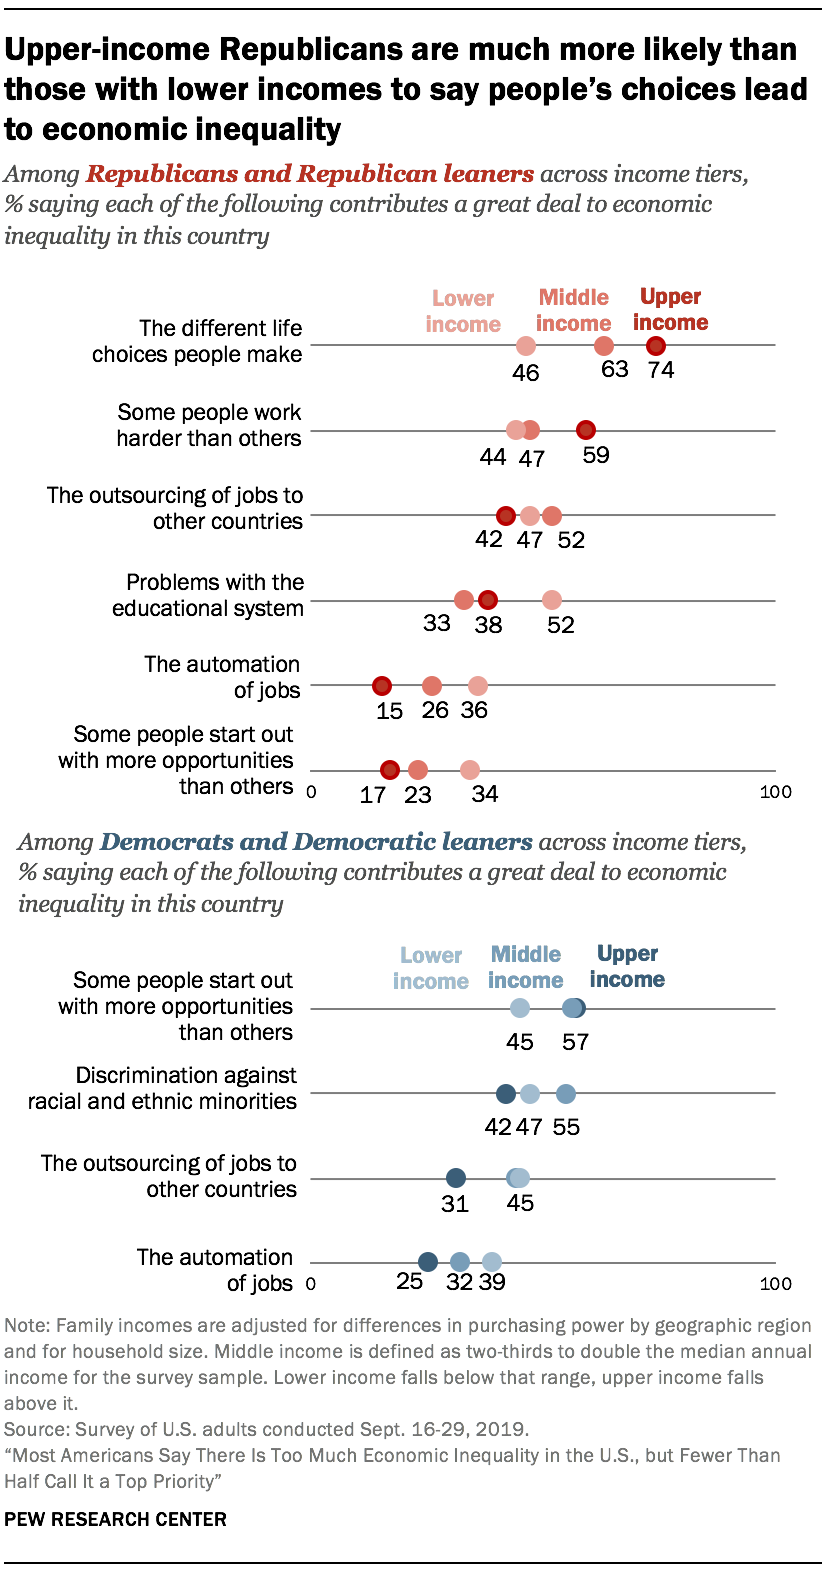 Upper-income Republicans are much more likely than those with lower incomes to say people's choices lead to economic inequality